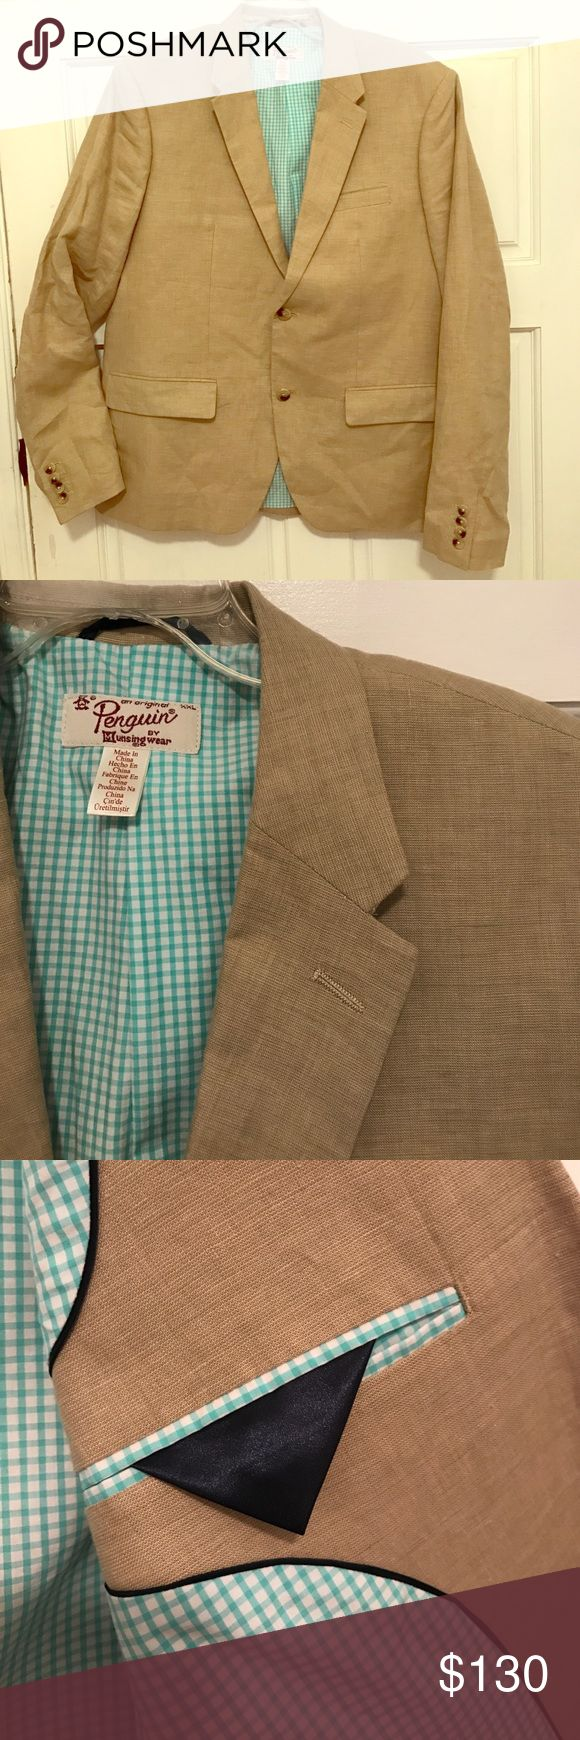 🌟FLASH SALE! NWOT Orig Penguin linen blazer XXL New without tag attached Original Penguin brand men's sport coat in tan toned linen!  This blazer is perfect for spring and summer, it's lined with a mint green gingham print and has tortoise patterned buttons.  The extra buttons are still attached and the pleat at the back is still tacked down.  Size is XXL which I would estimate is roughly 44-46ish.  Outer material is 100% linen and the inside is fully lined! Original Penguin Suits & Blazers…